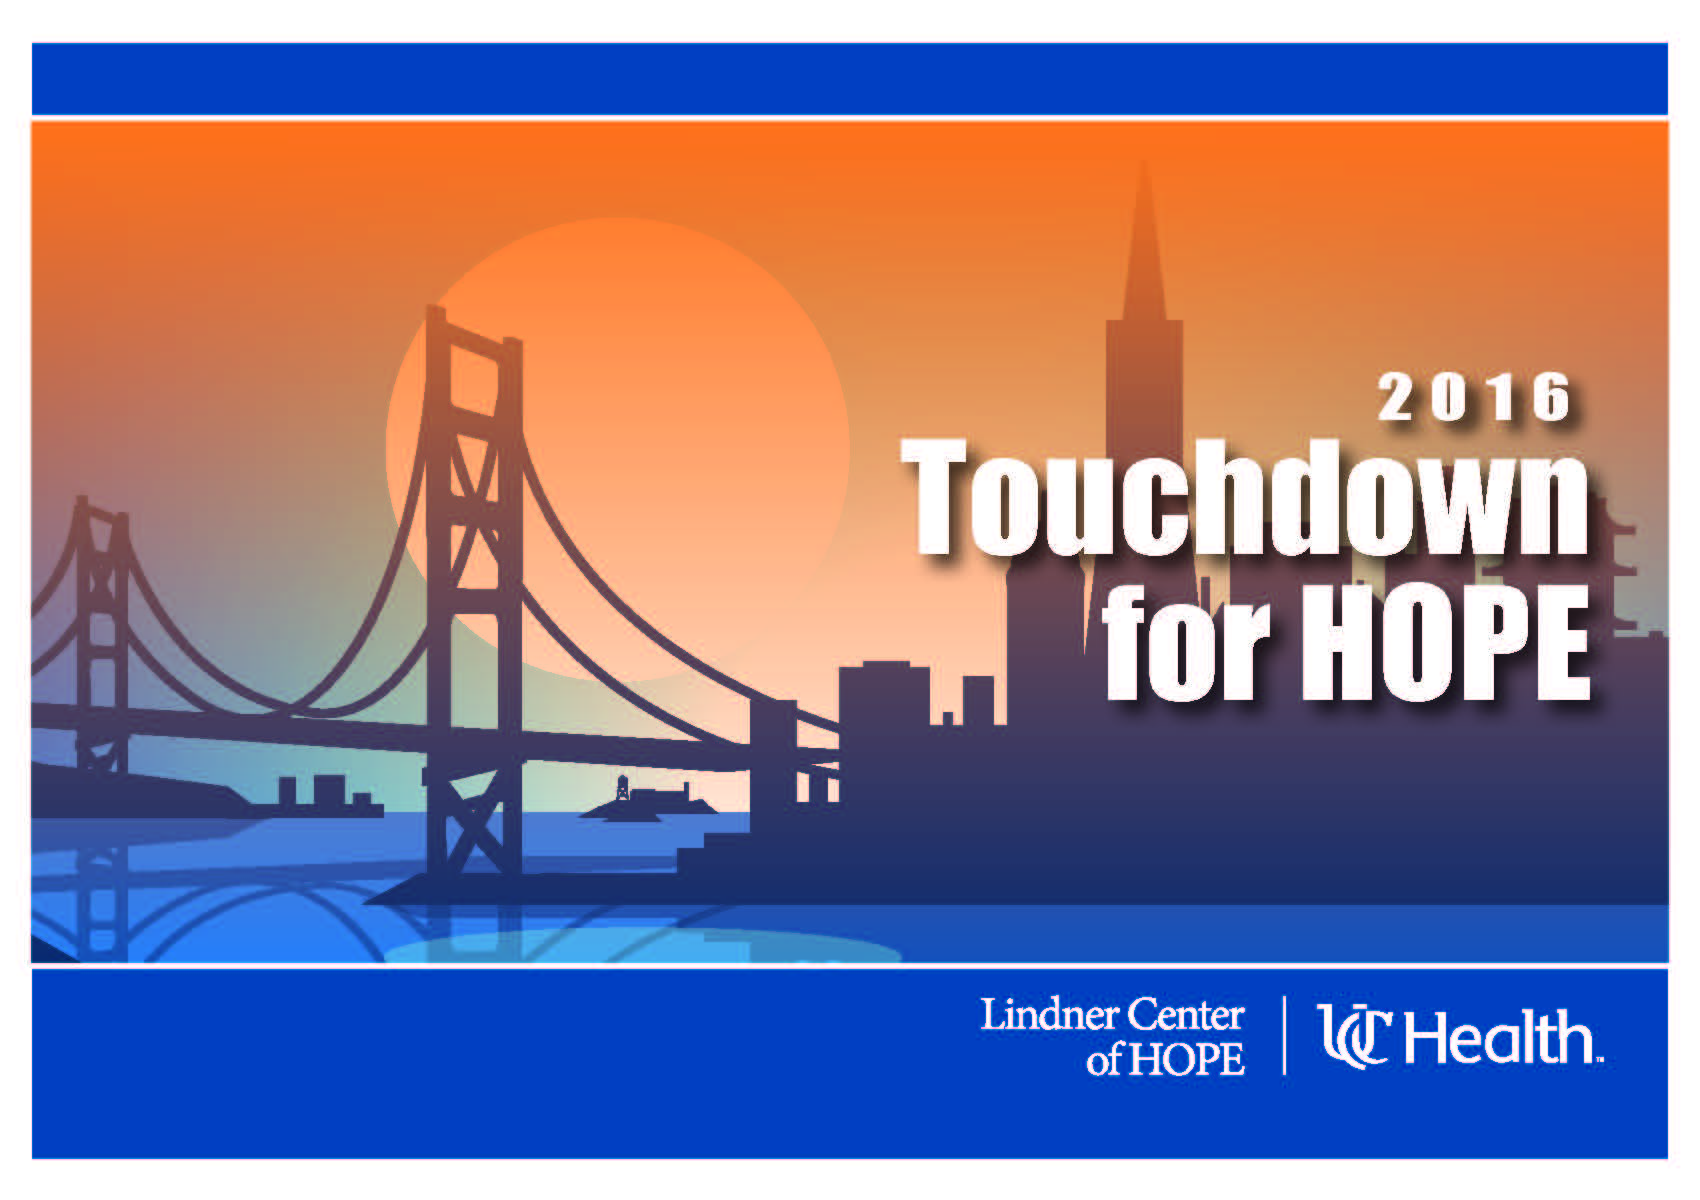 TouchdownForHOPE2016_InvitationCover_LCOH_9-15-v2